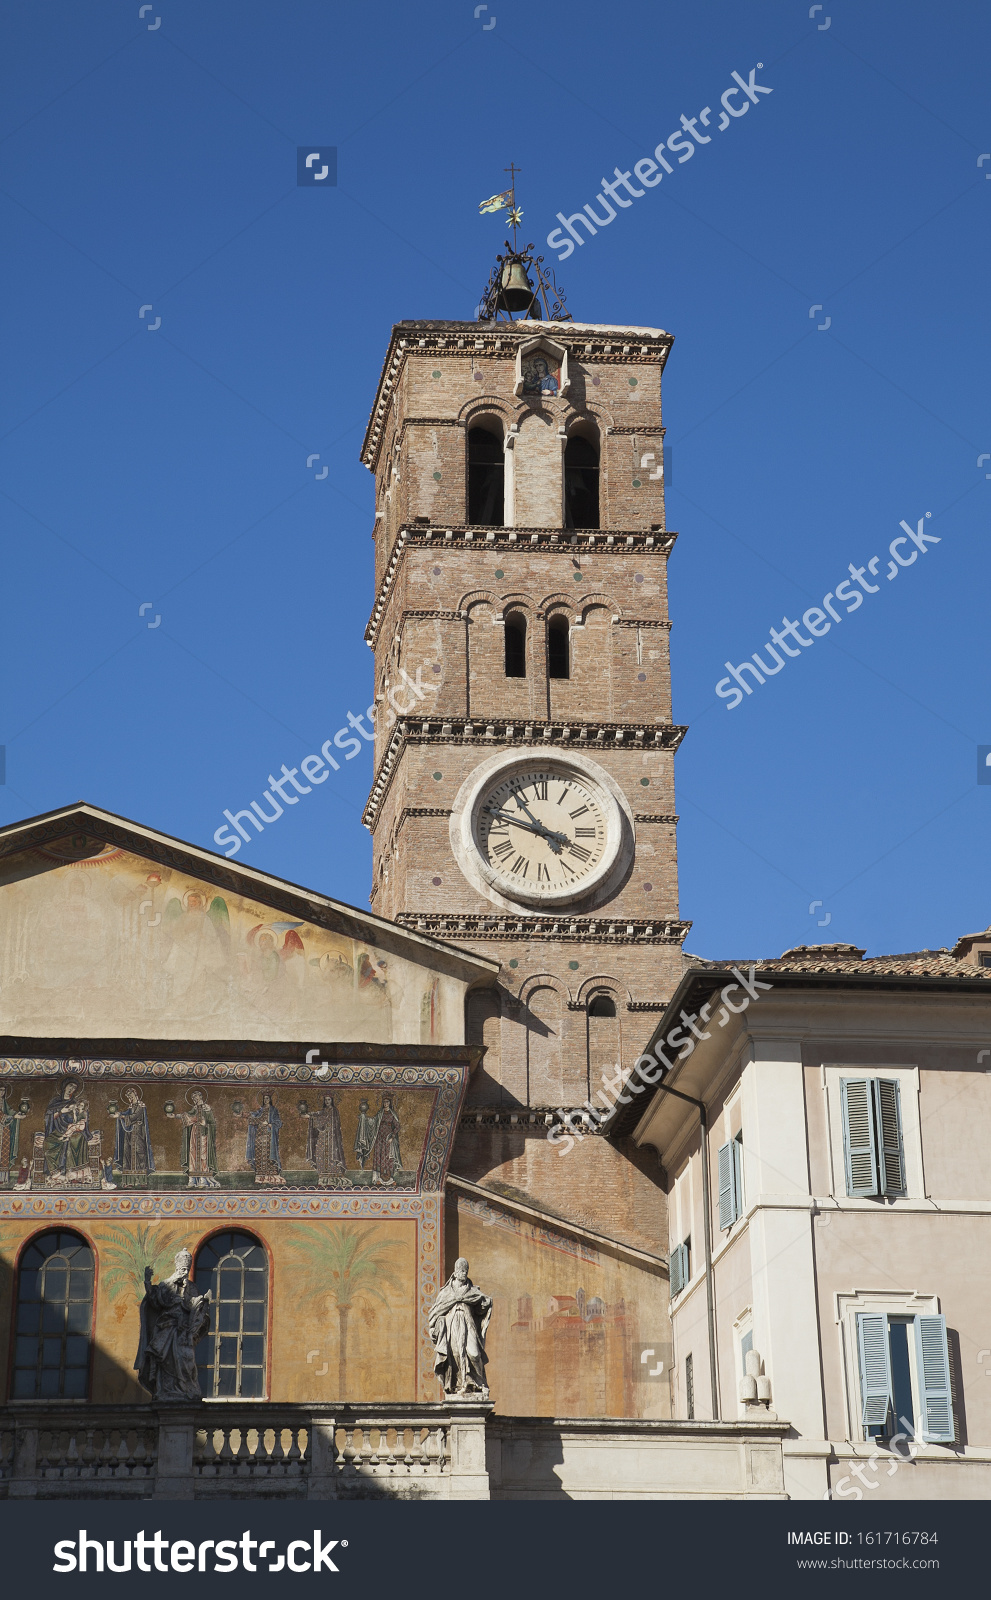 Clock Tower On The Basilica Di Santa Maria In Trastevere, Rome.